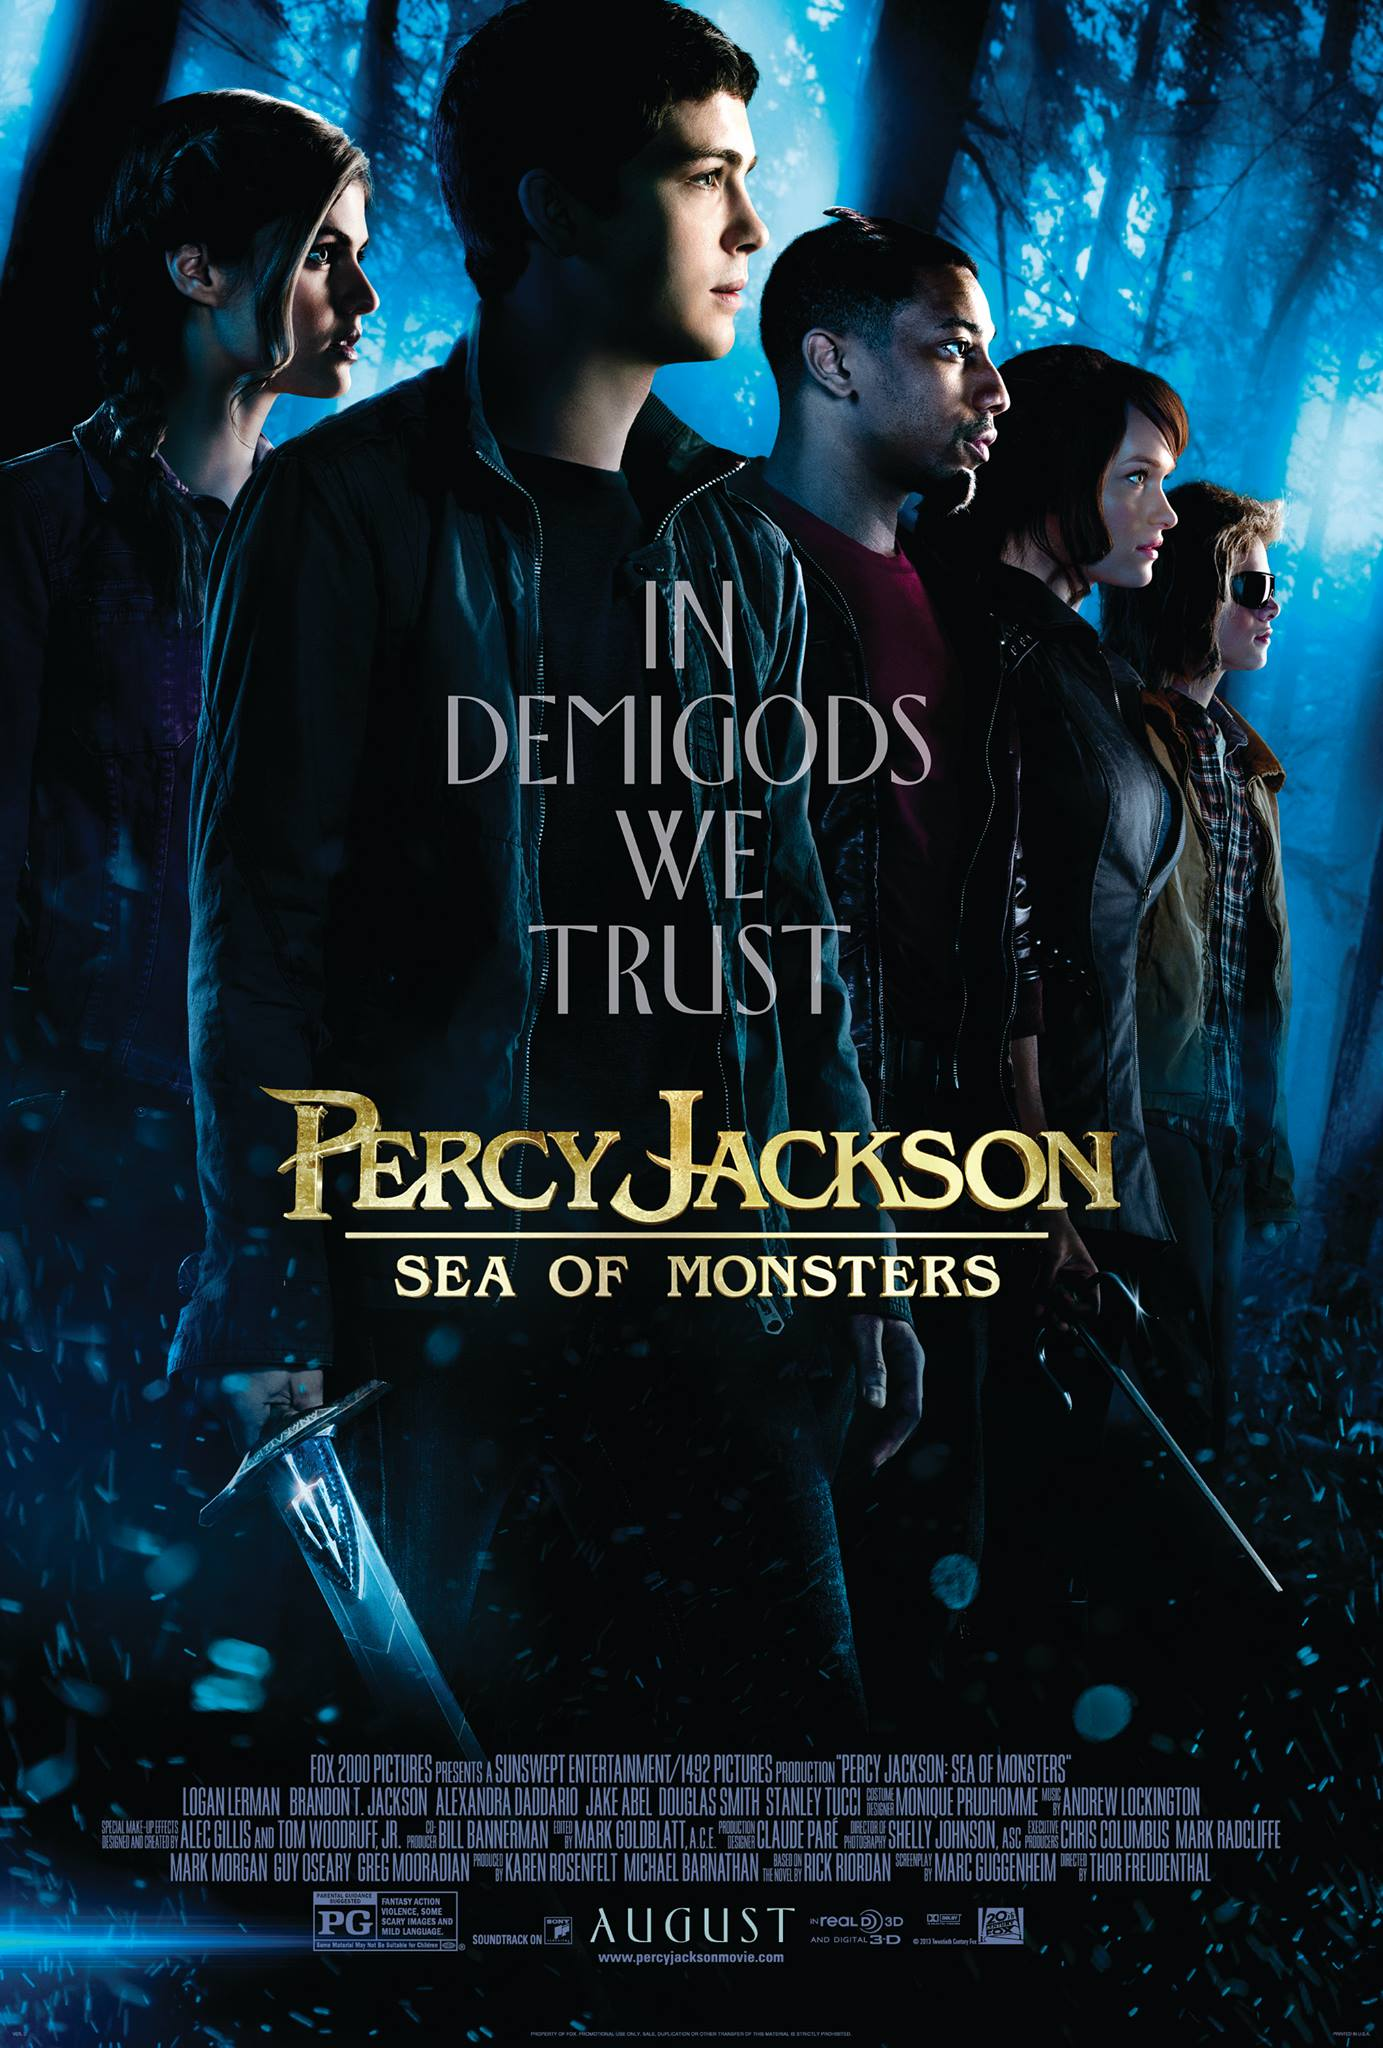 Win Passes To The Advance Screening Of Percy Jackson Sea